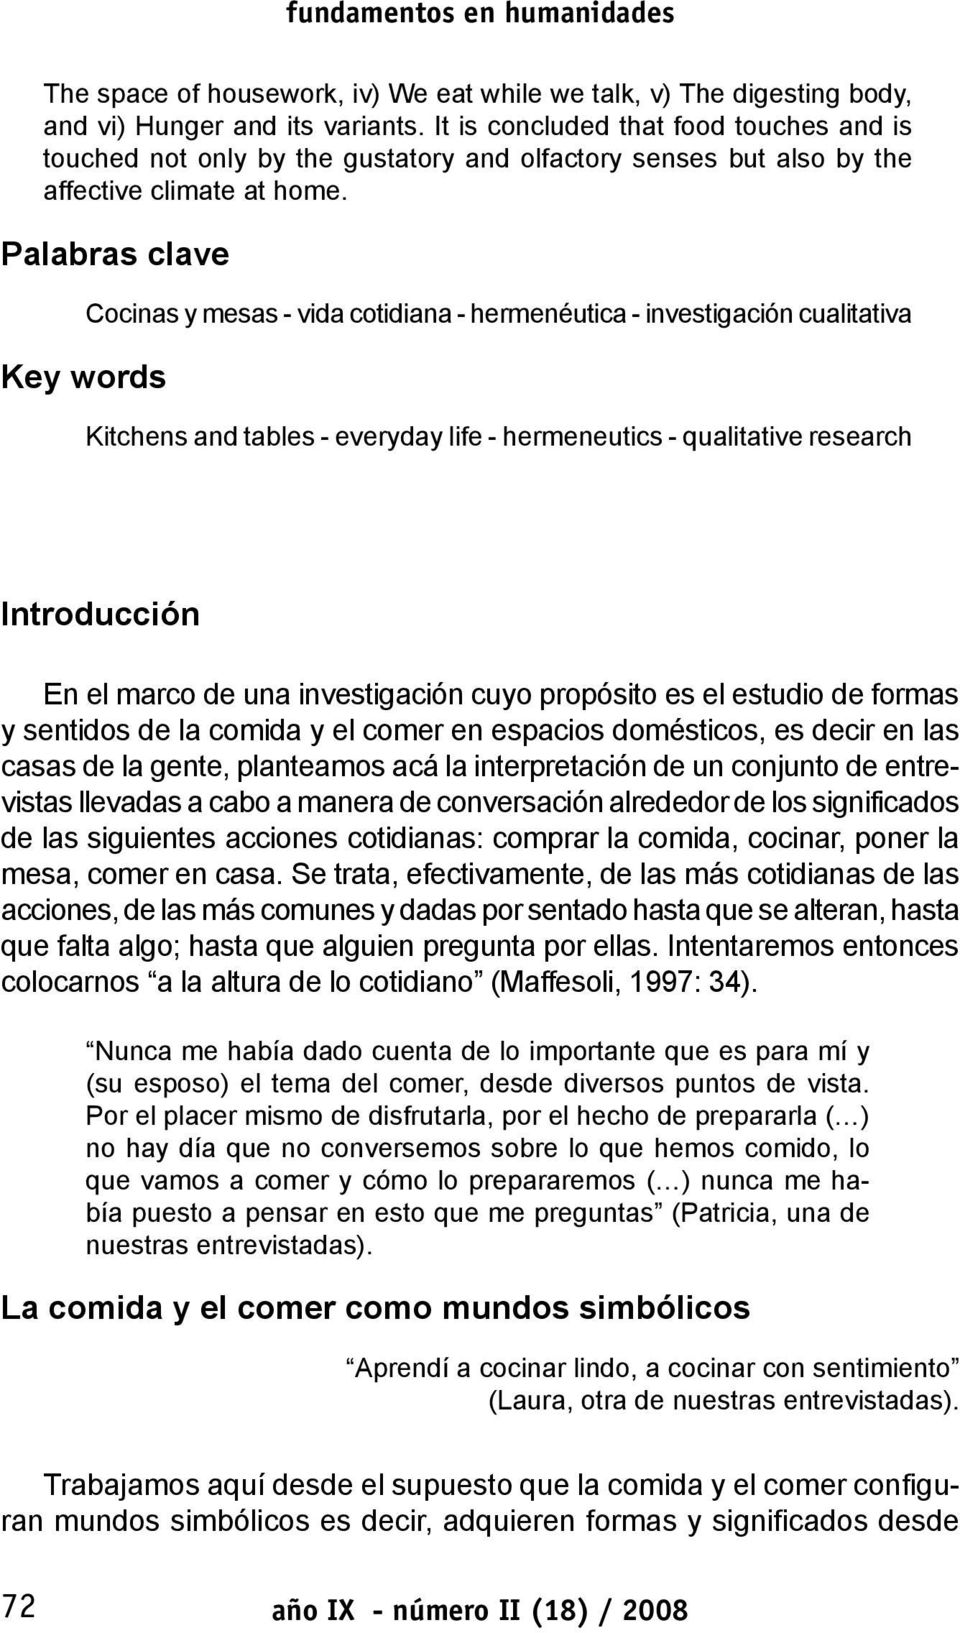 Palabras clave Key words Cocinas y mesas - vida cotidiana - hermenéutica - investigación cualitativa Kitchens and tables - everyday life - hermeneutics - qualitative research Introducción En el marco